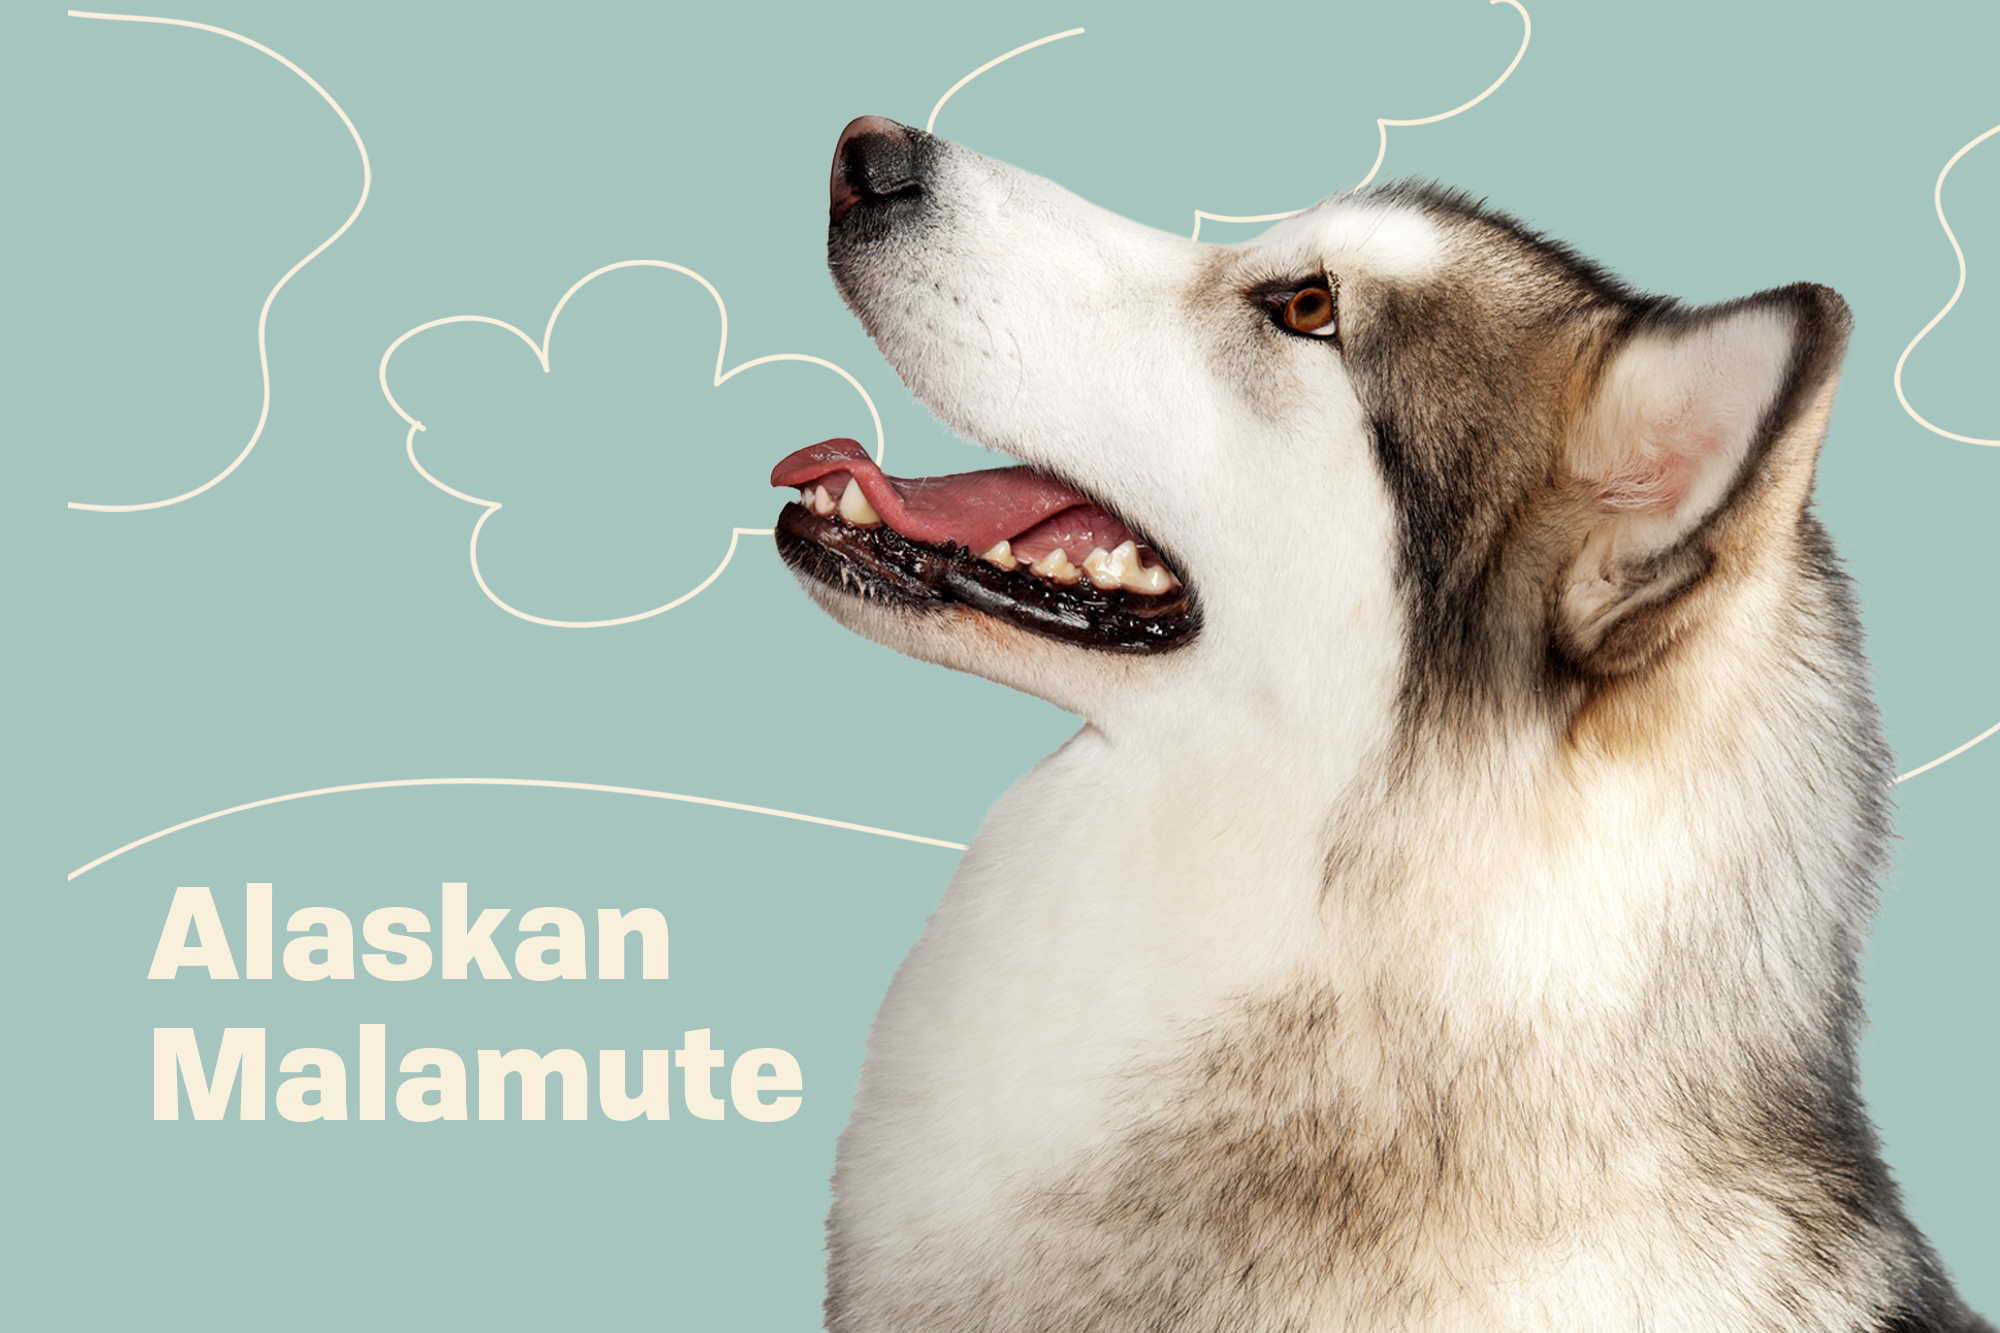 Alaskan Malamute Breed Photo